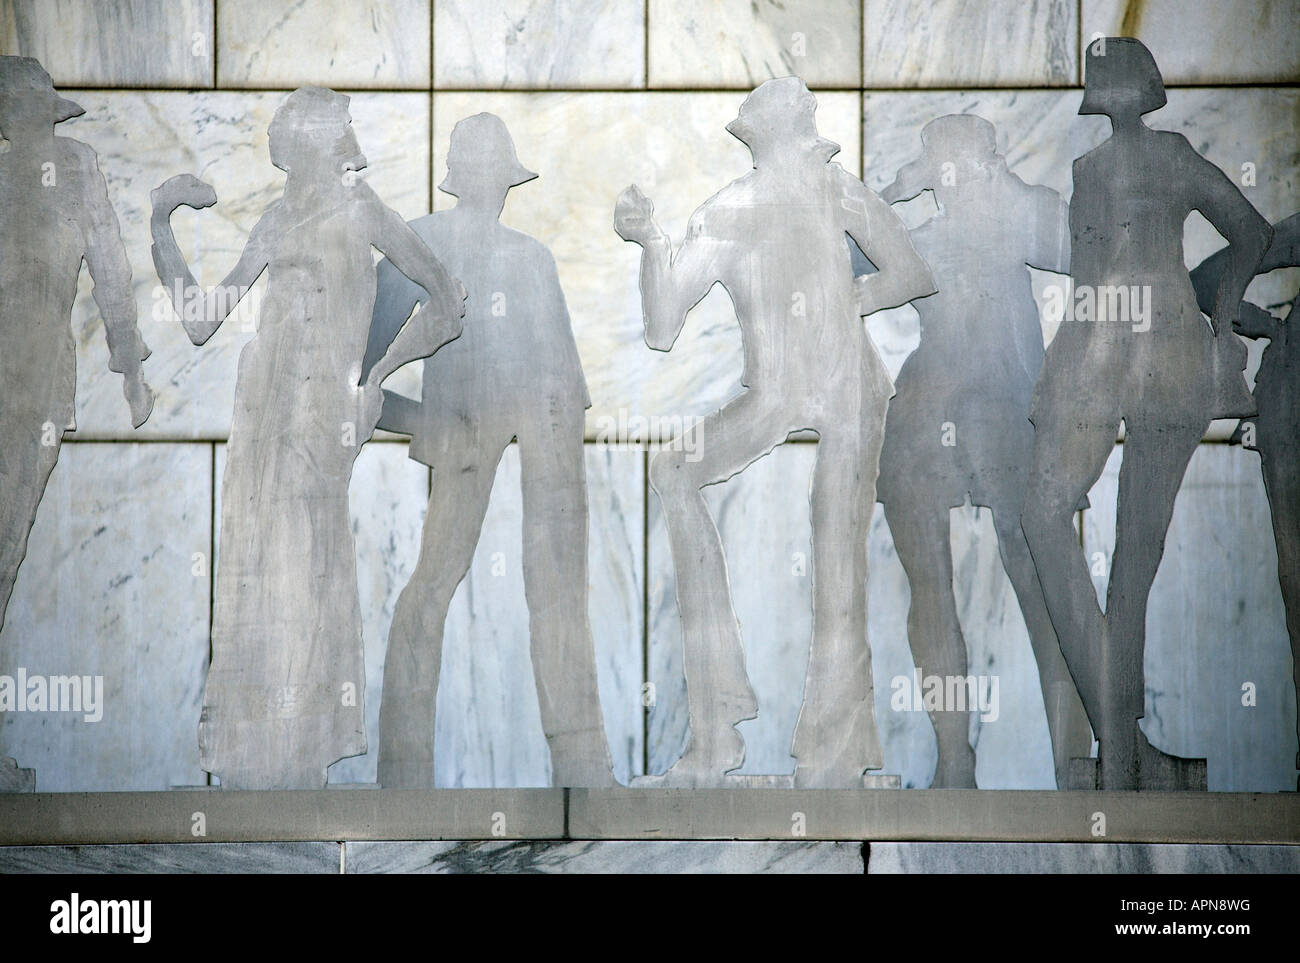 Cut outs of people. Albany, Albany County, New York State, USA - Stock Image